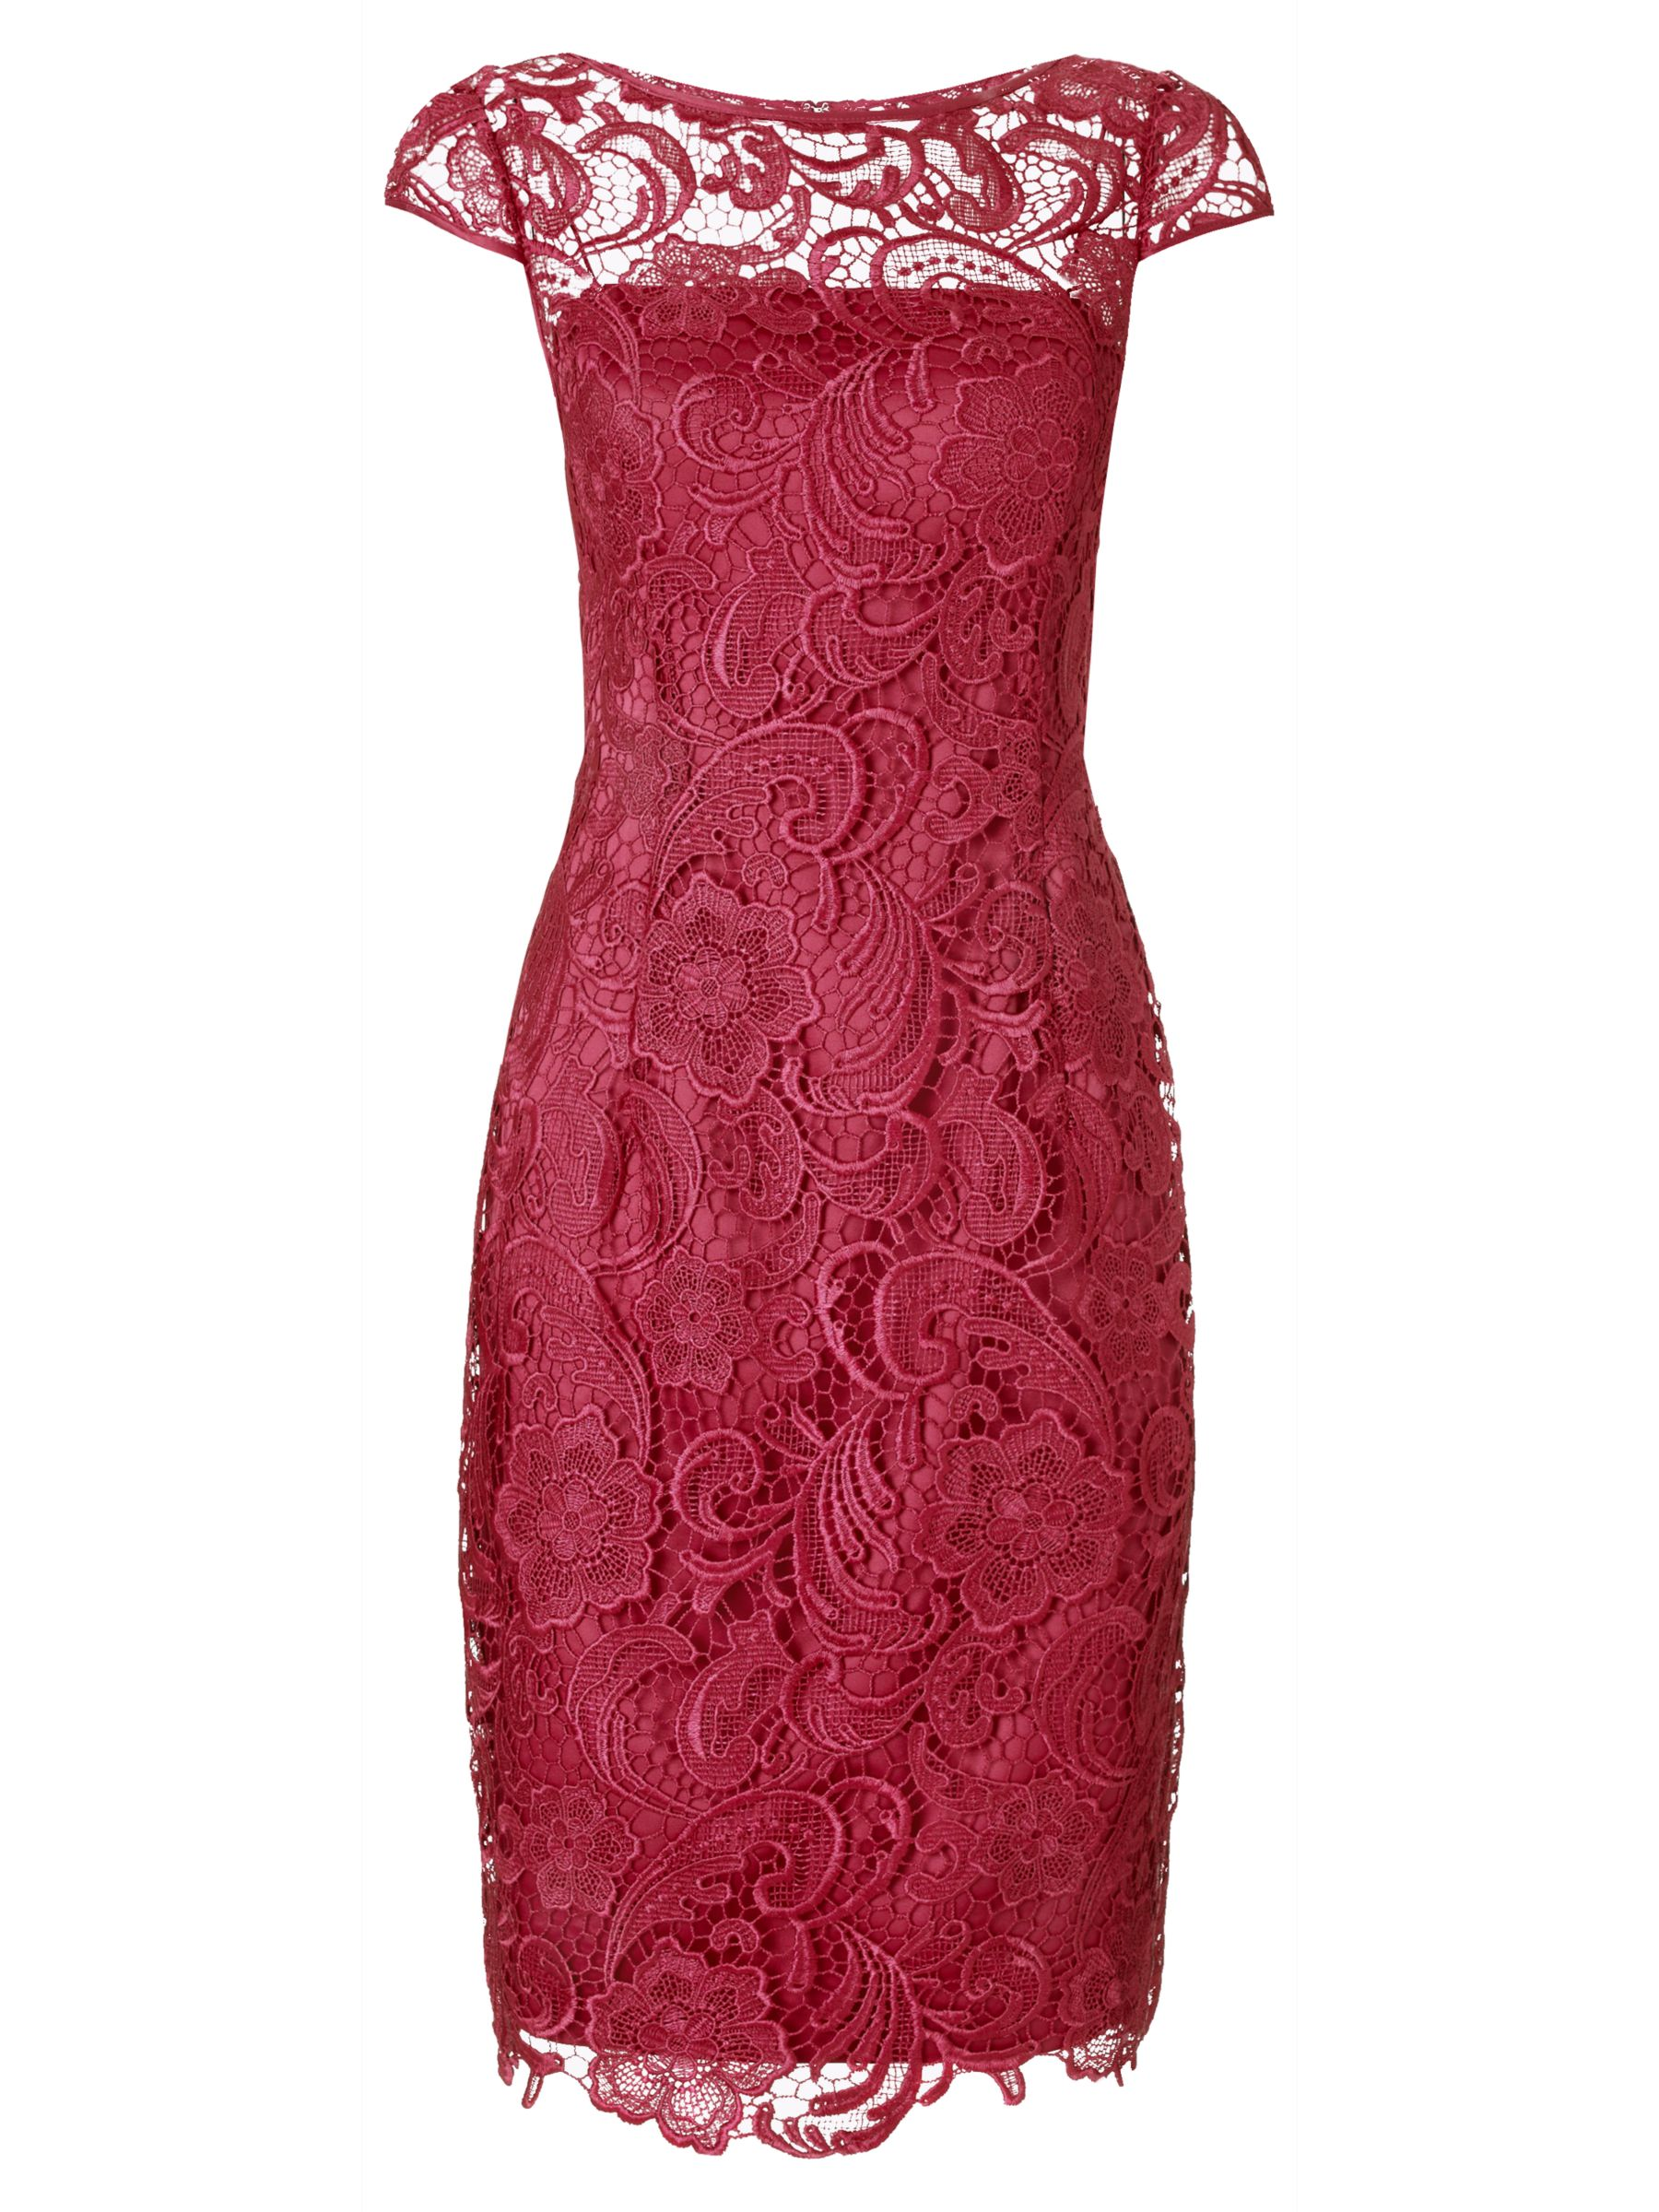 adrianna papell cap sleeve lace dress lacquer, adrianna, papell, cap, sleeve, lace, dress, lacquer, adrianna papell, 8|10|14|16|6|18|12, women, eveningwear, special offers, womenswear offers, 30% off selected adrianna papell, brands a-k, valentines fashion edit, womens dresses, gifts, valentines day, red dress, 1839126